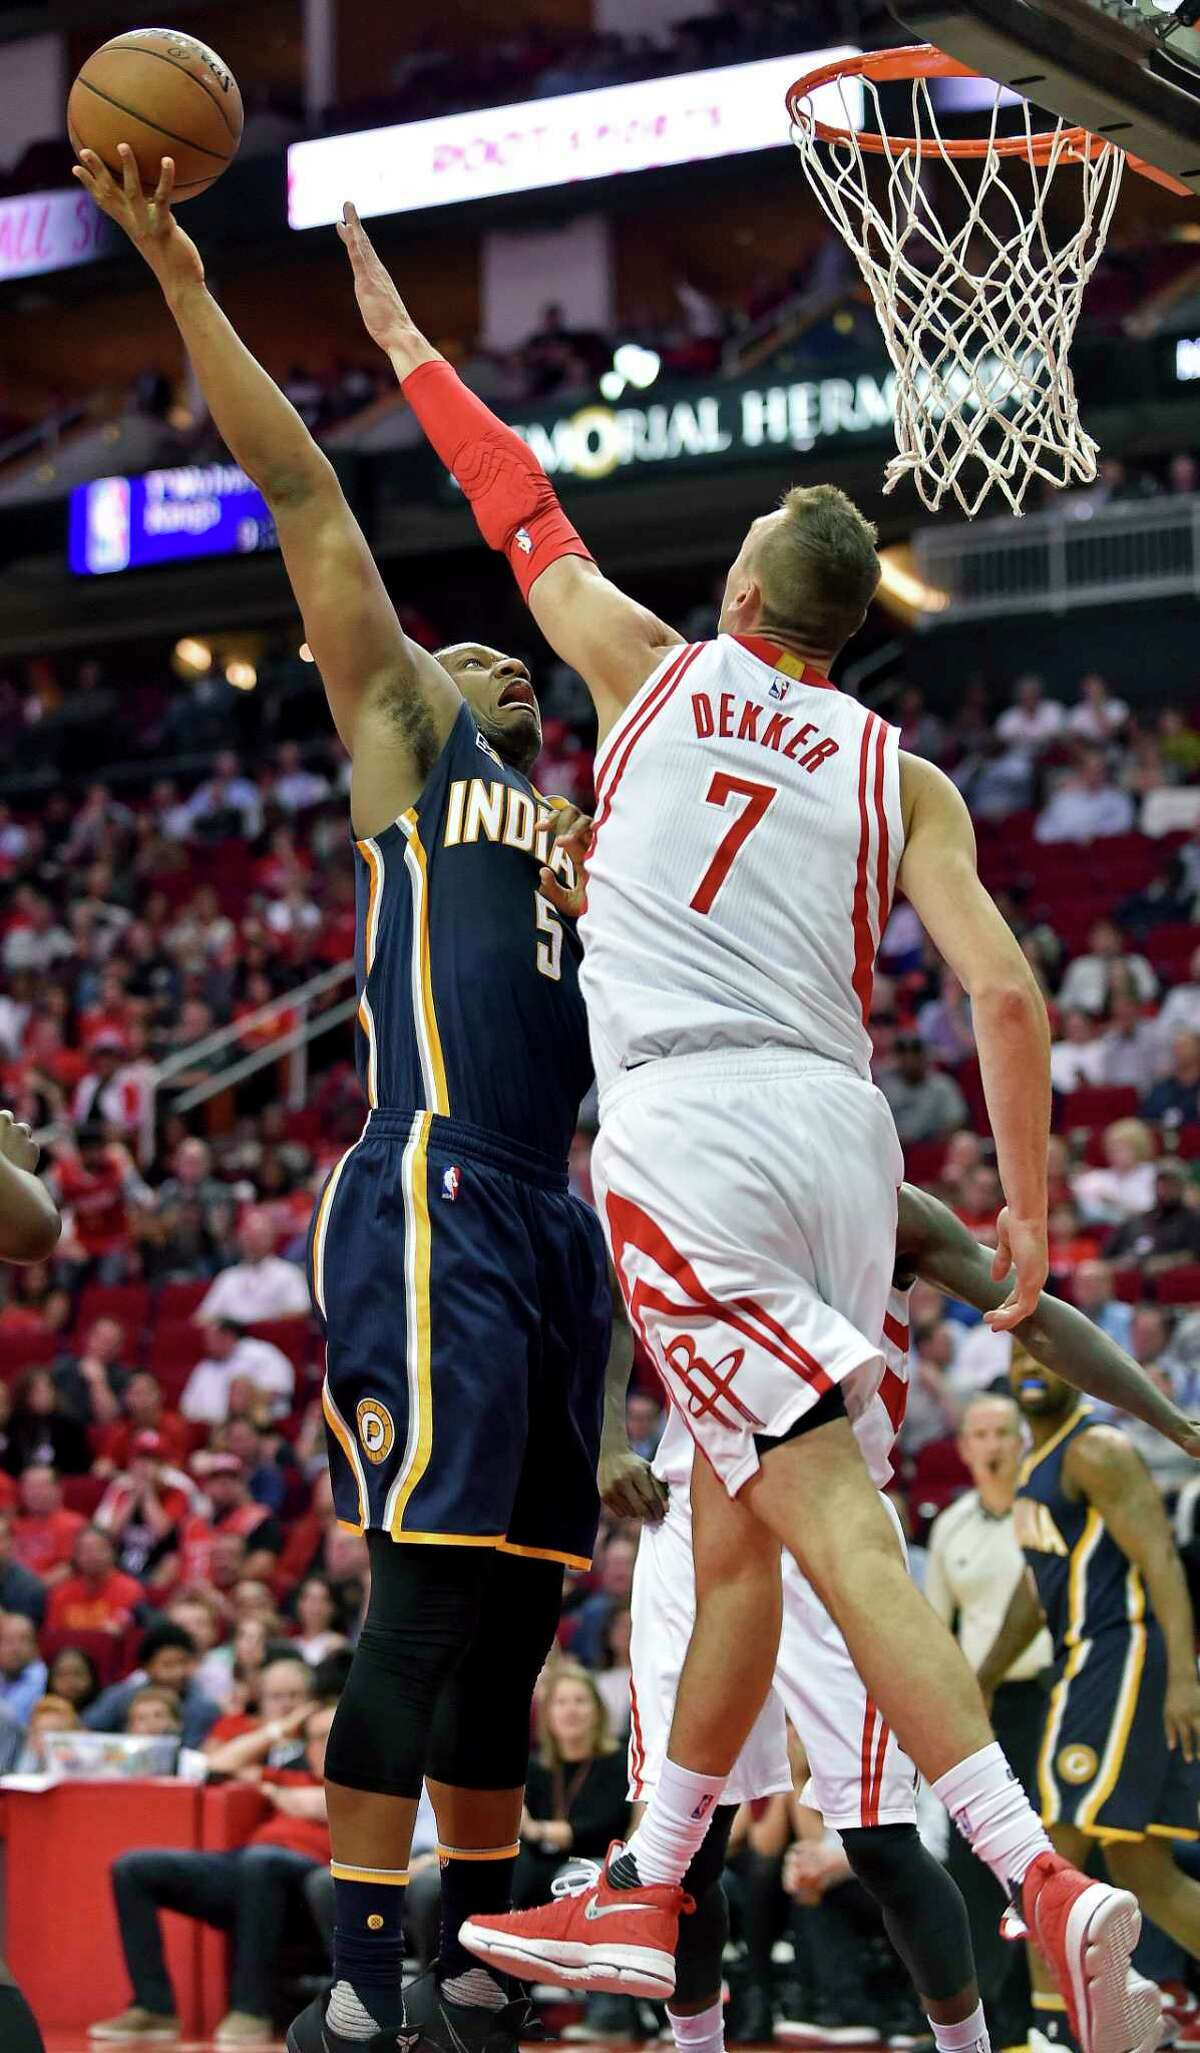 Indiana Pacers forward Lavoy Allen (5) shoots over Houston Rockets forward Sam Dekker (7) in the first half of an NBA basketball game, Monday, Feb. 27, 2017, in Houston. (AP Photo/Eric Christian Smith)